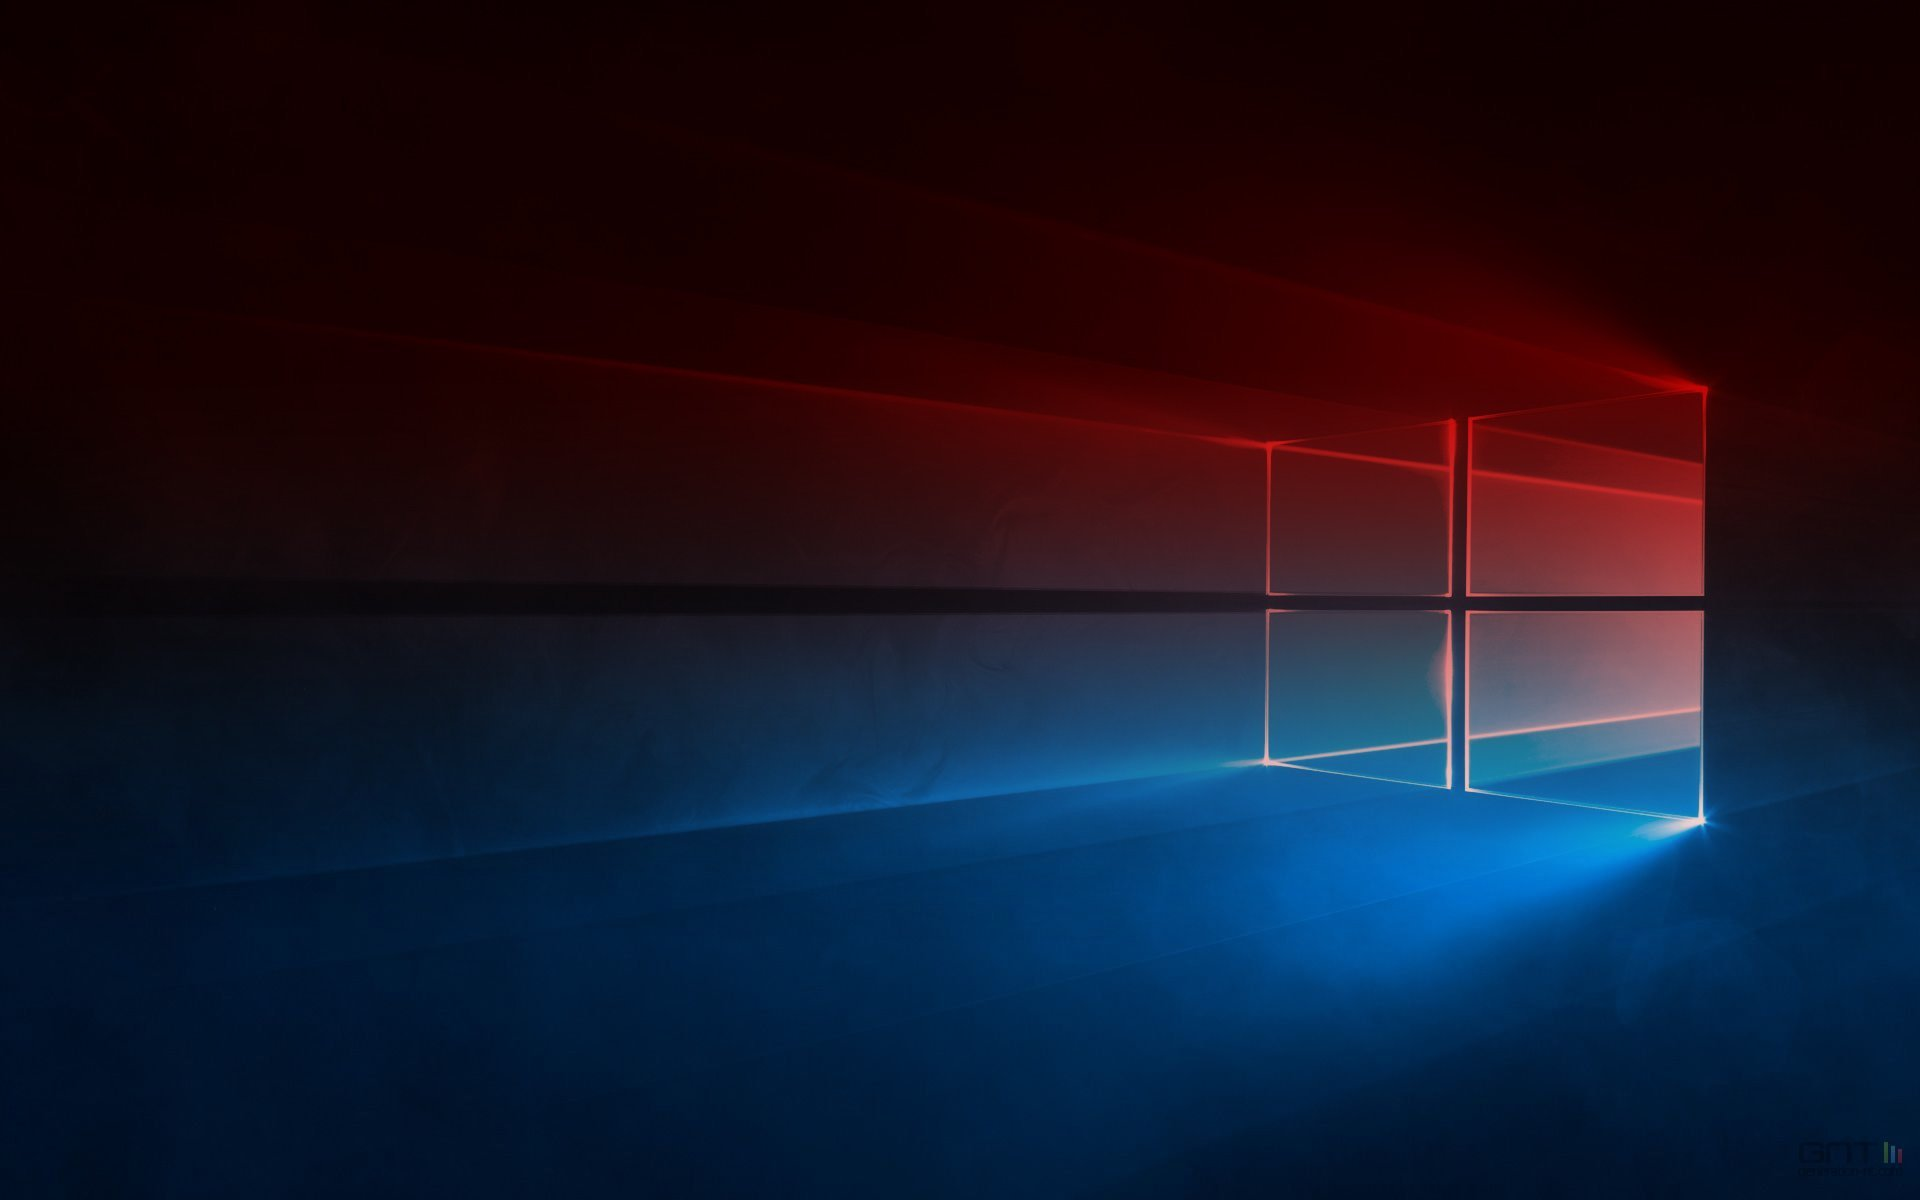 Windows 10 Kumulatives Update KB3194496